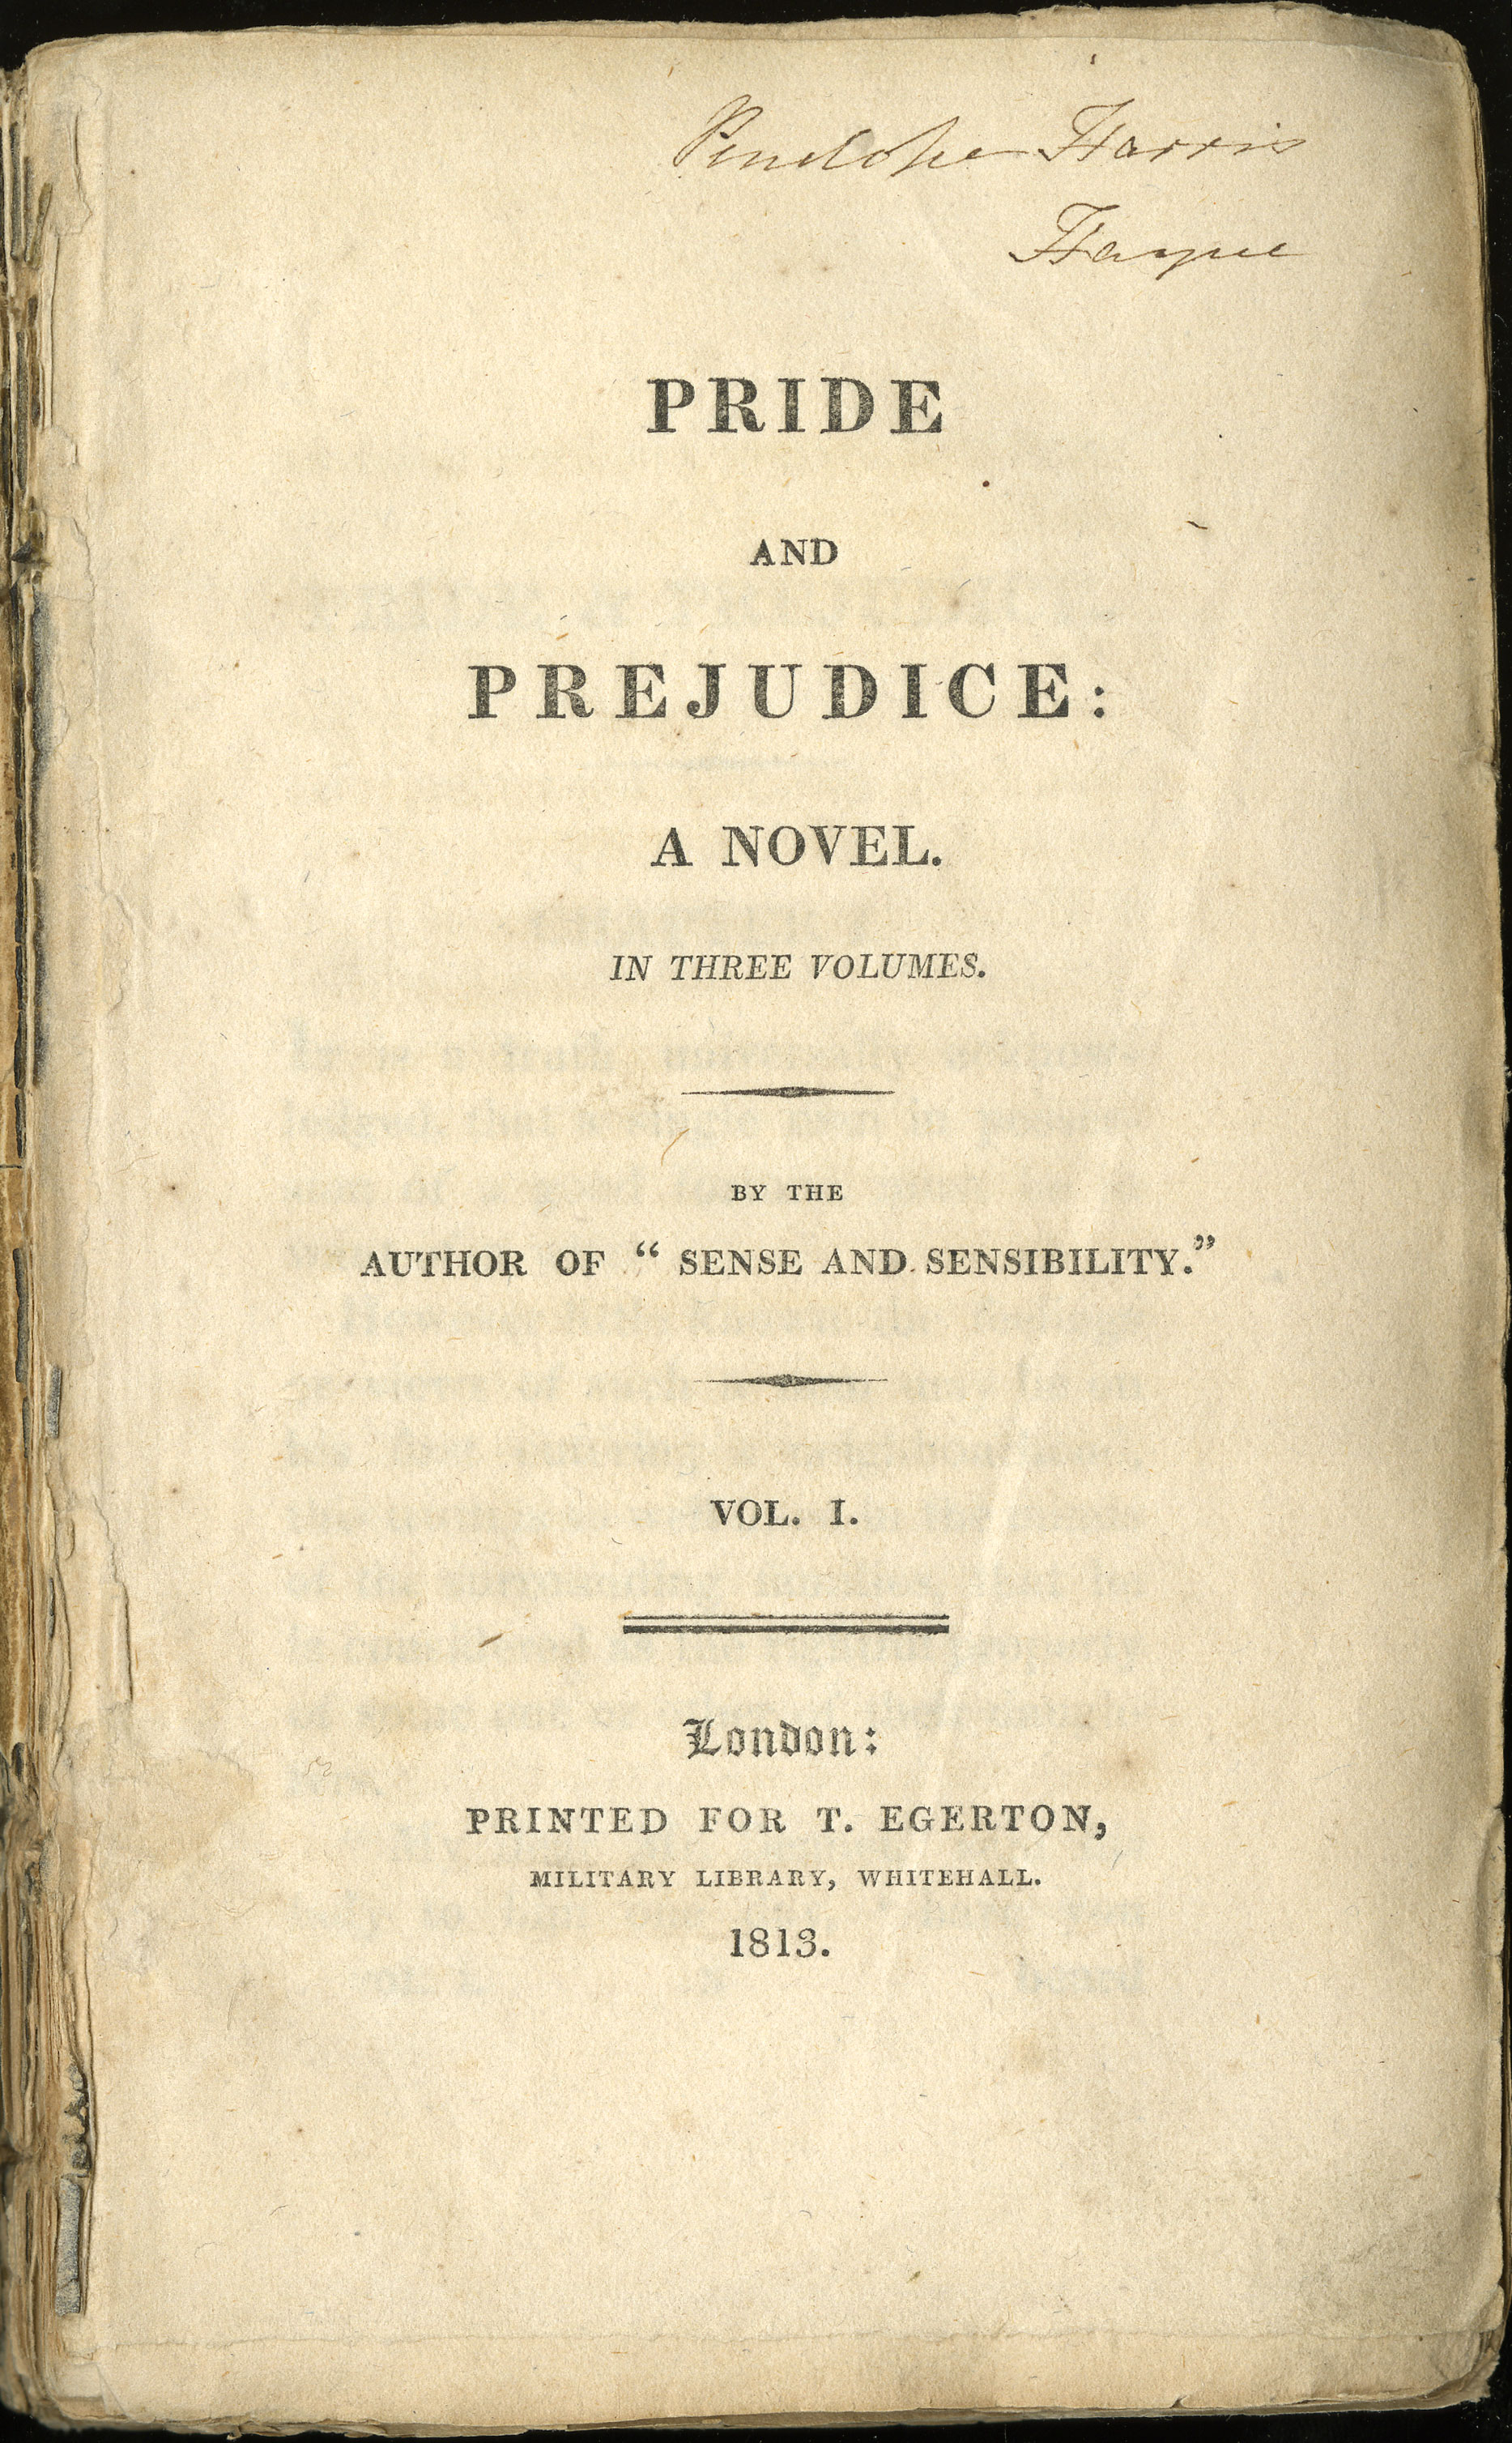 The use of letter writing in pride and prejudice by jane austen